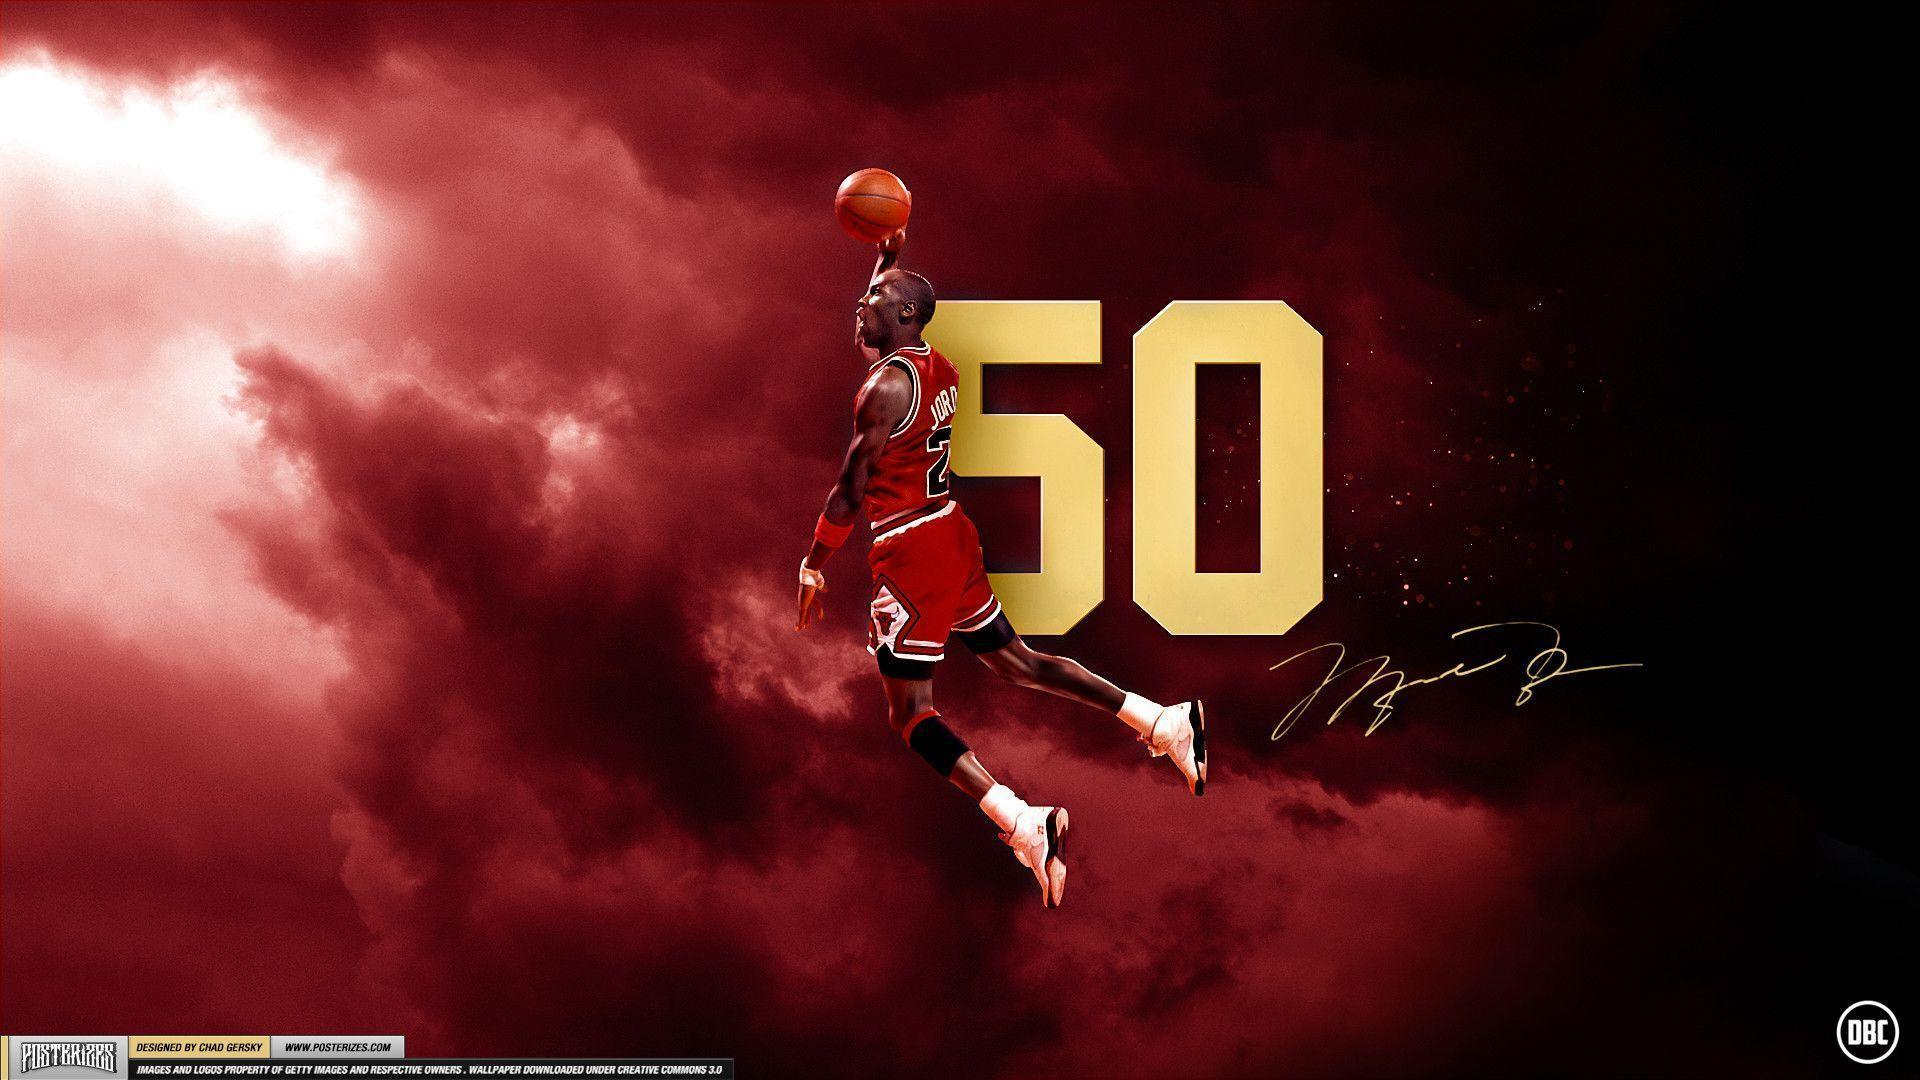 Michael Jordan Wallpaper 1080p: Michael Jordan Wallpapers 1920x1080